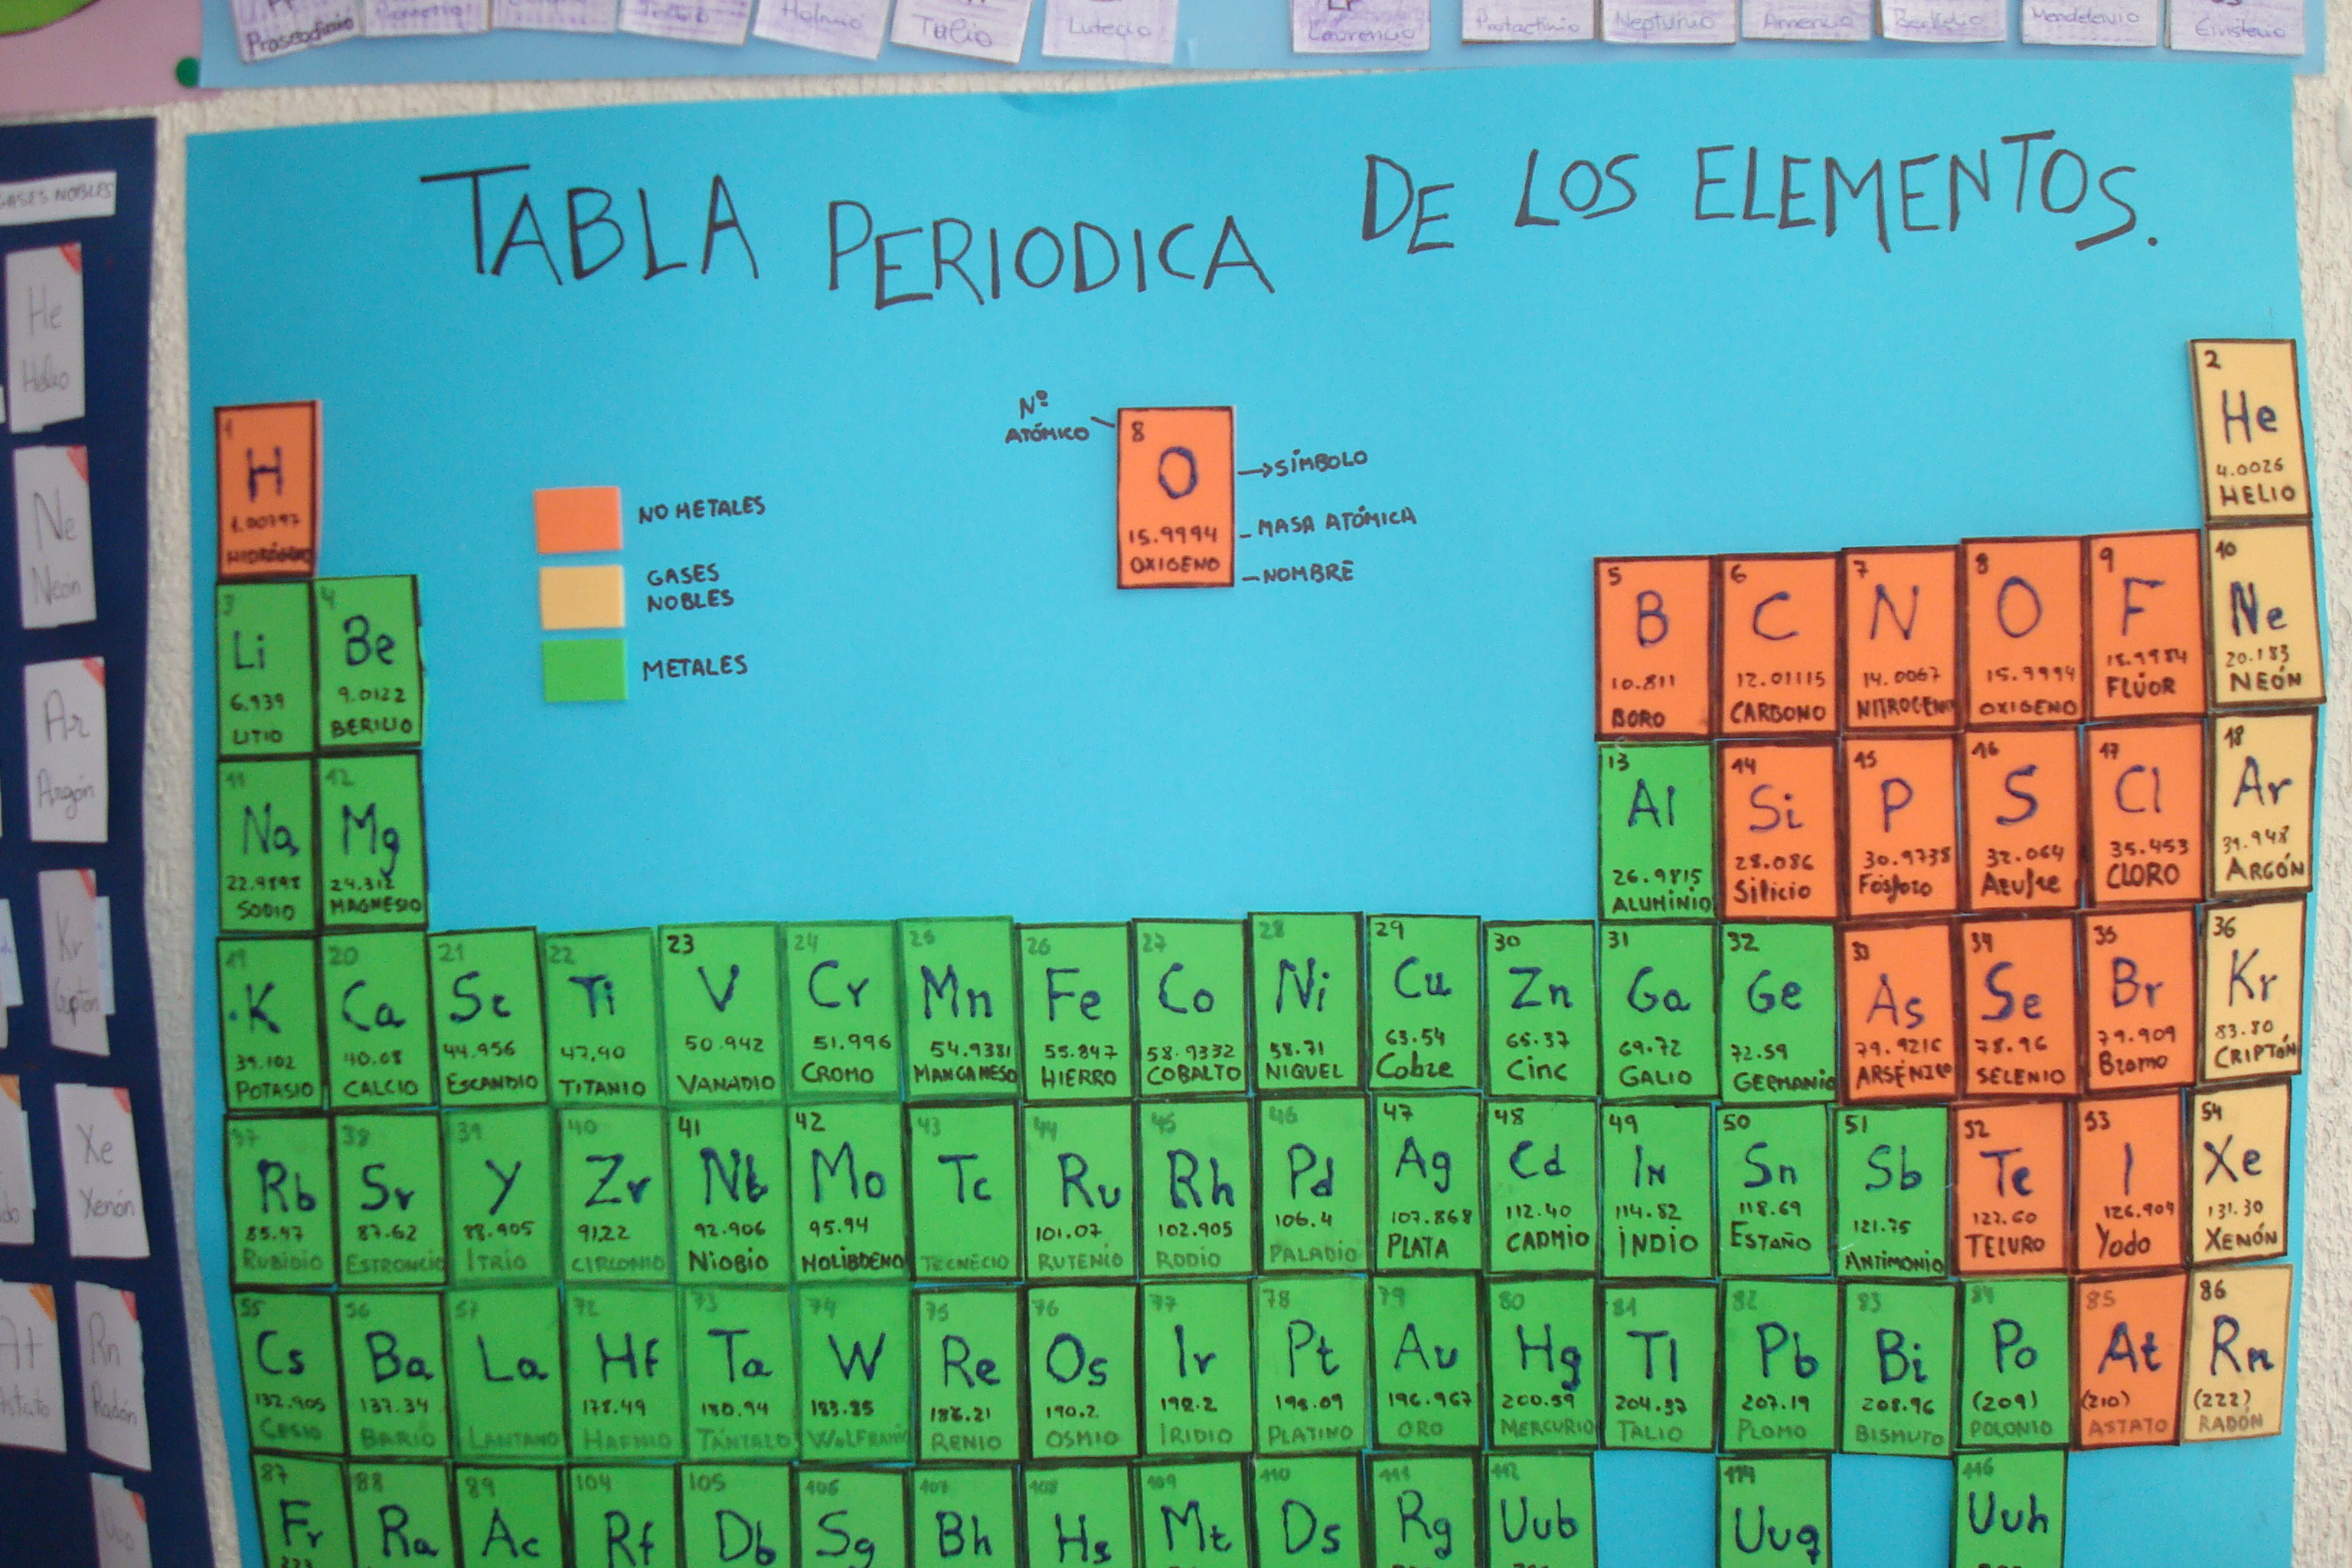 Tabla peridica de elementos qumicos periodic tables of the spang urtaz Images